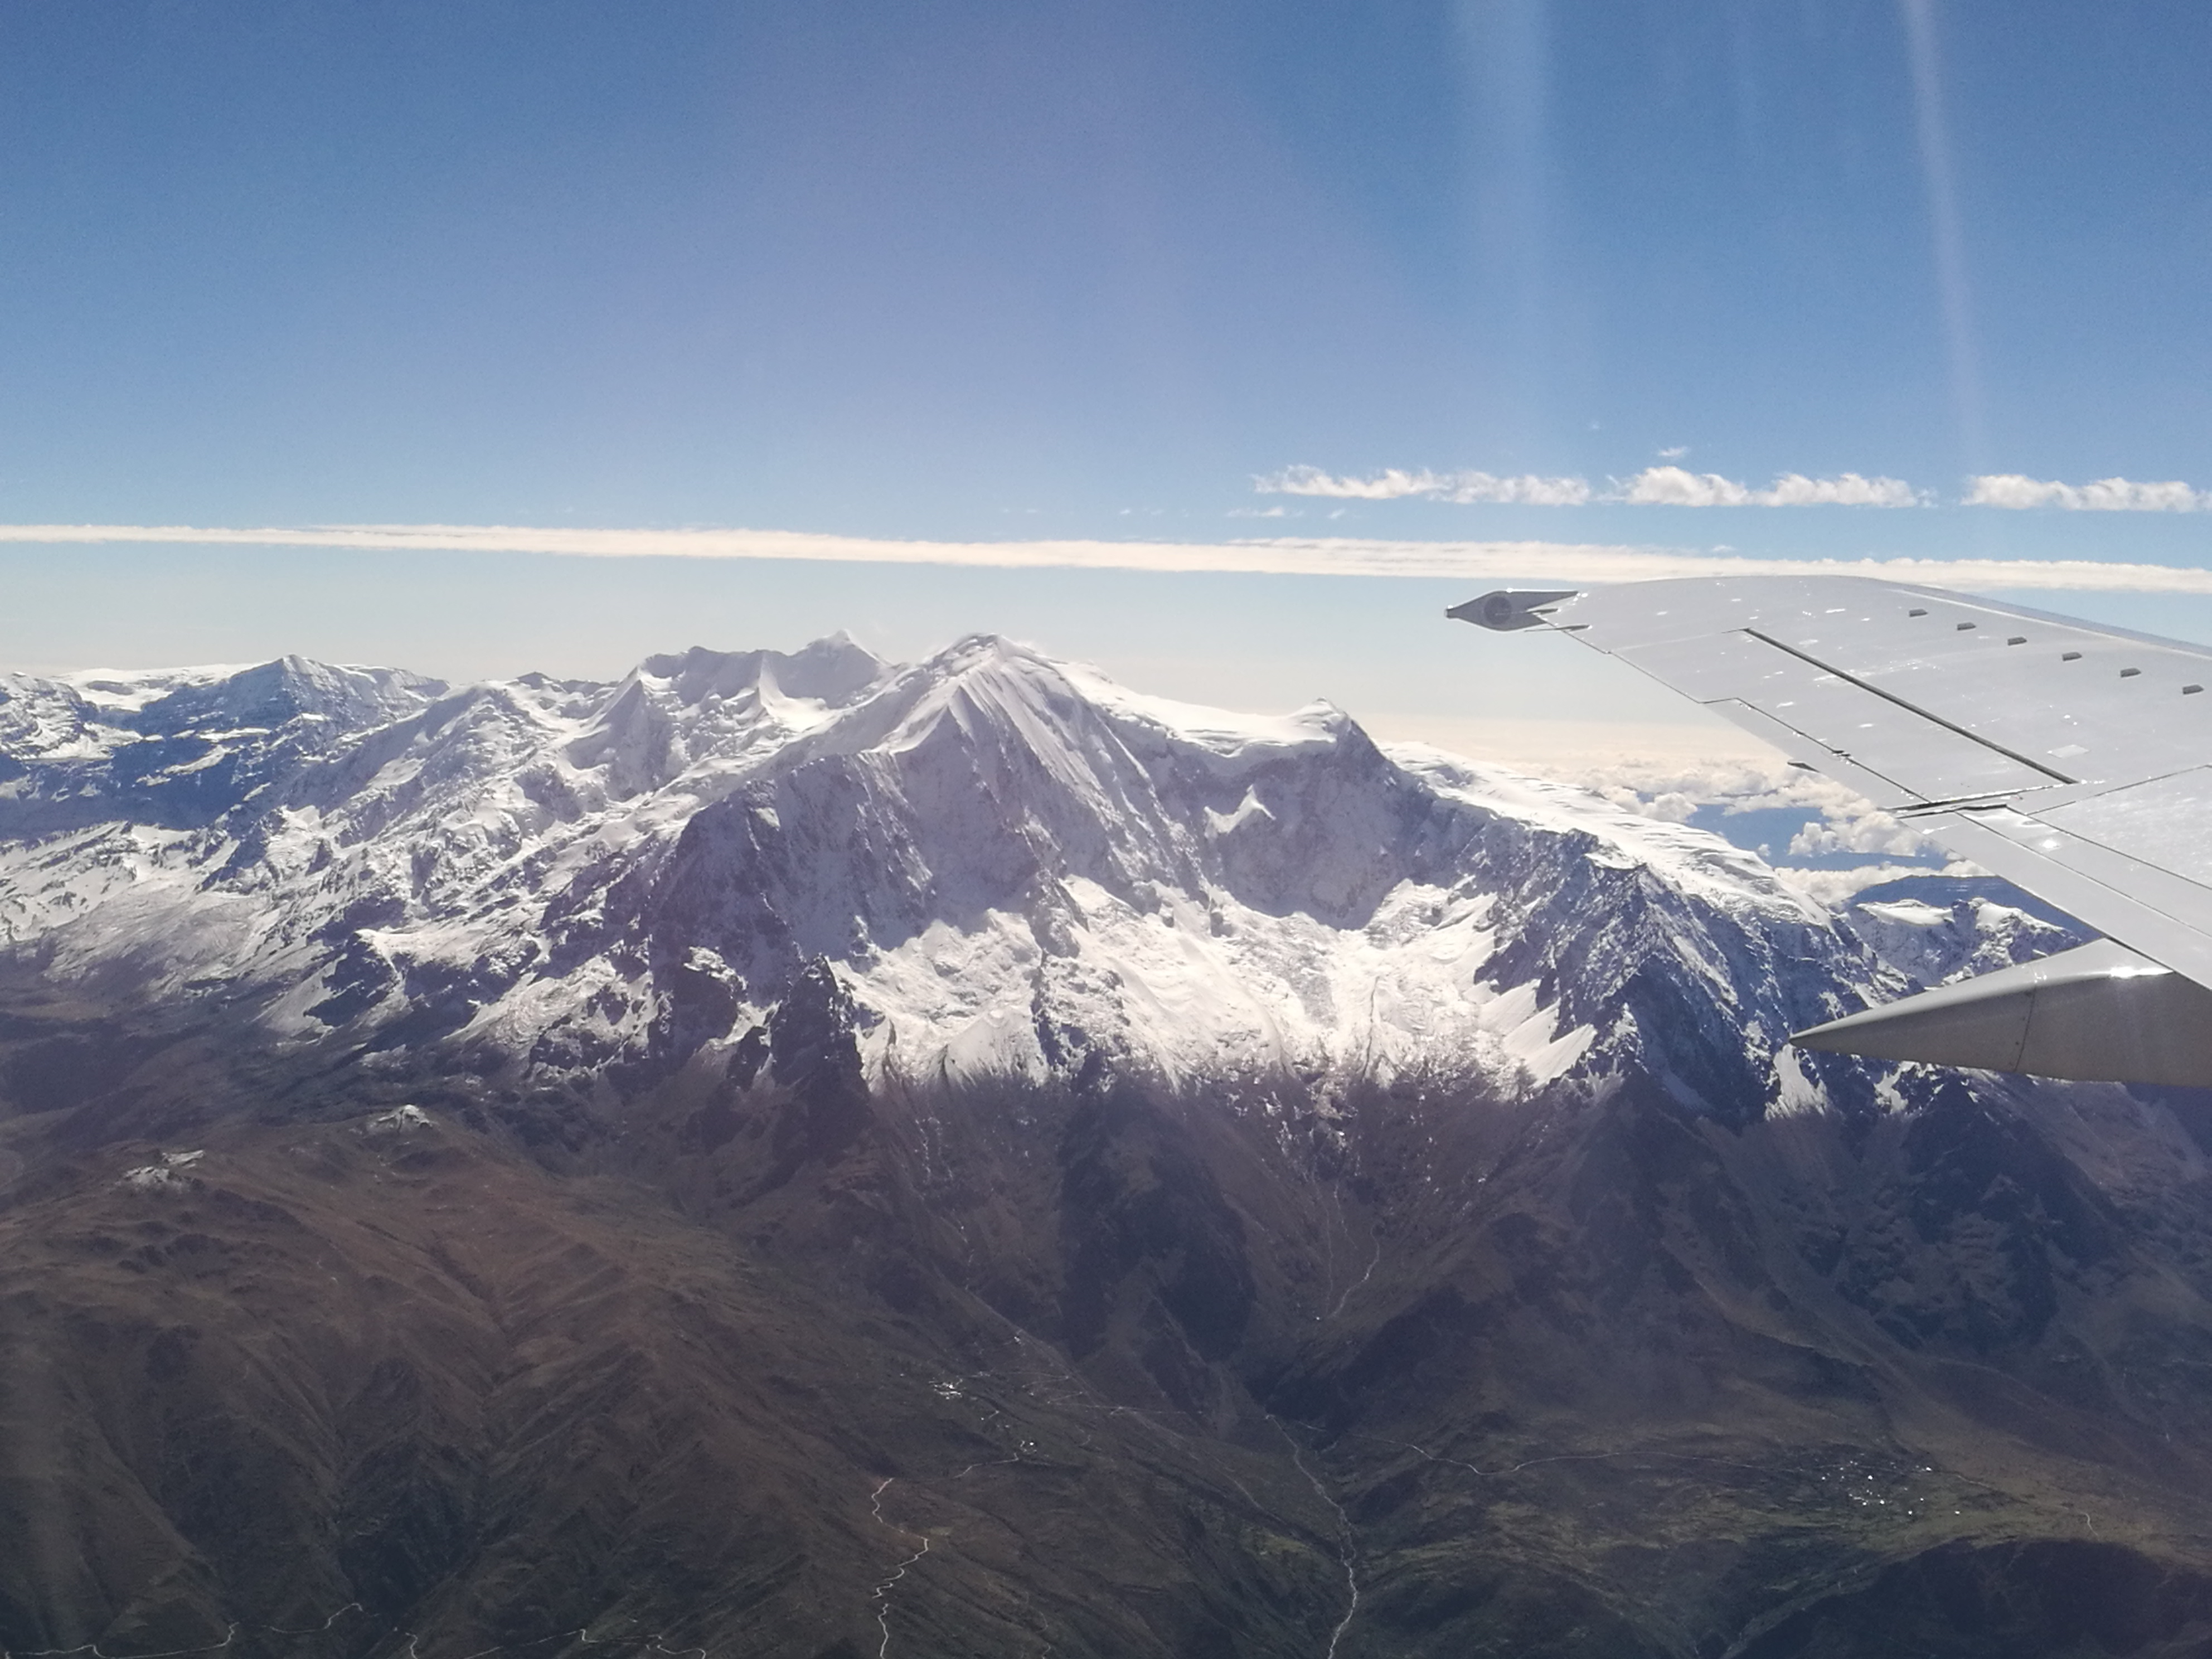 Recently fallen (and needed!) snow adorns the Bolivian Andean mountains.